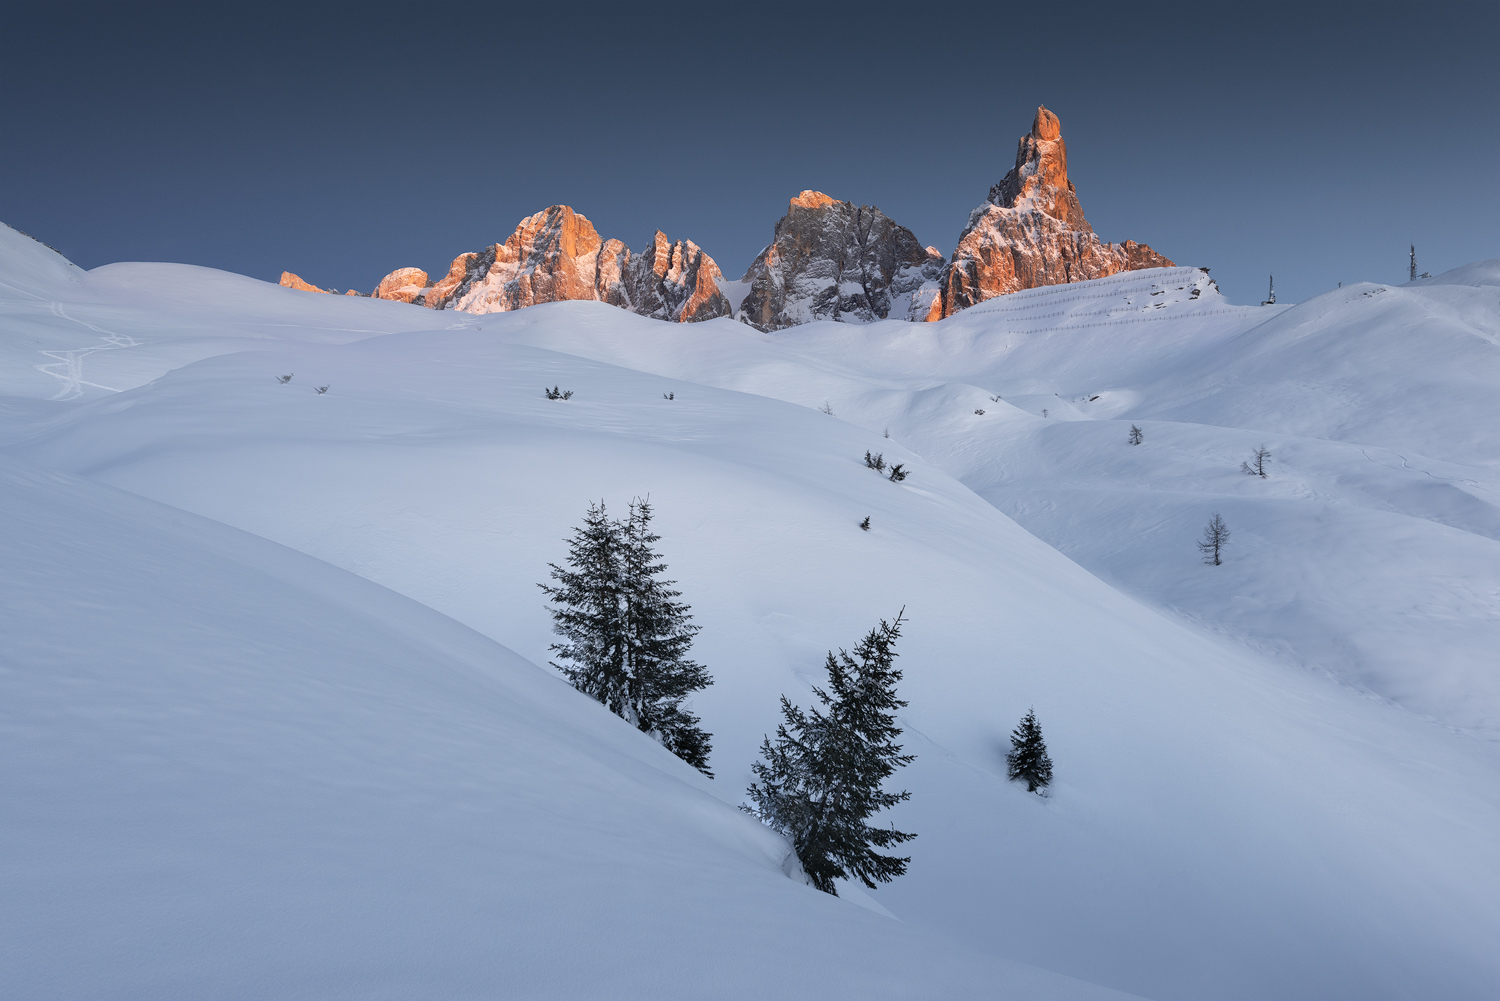 Image of snowy italian landscape by Mark Price, UK Landscape Photographer